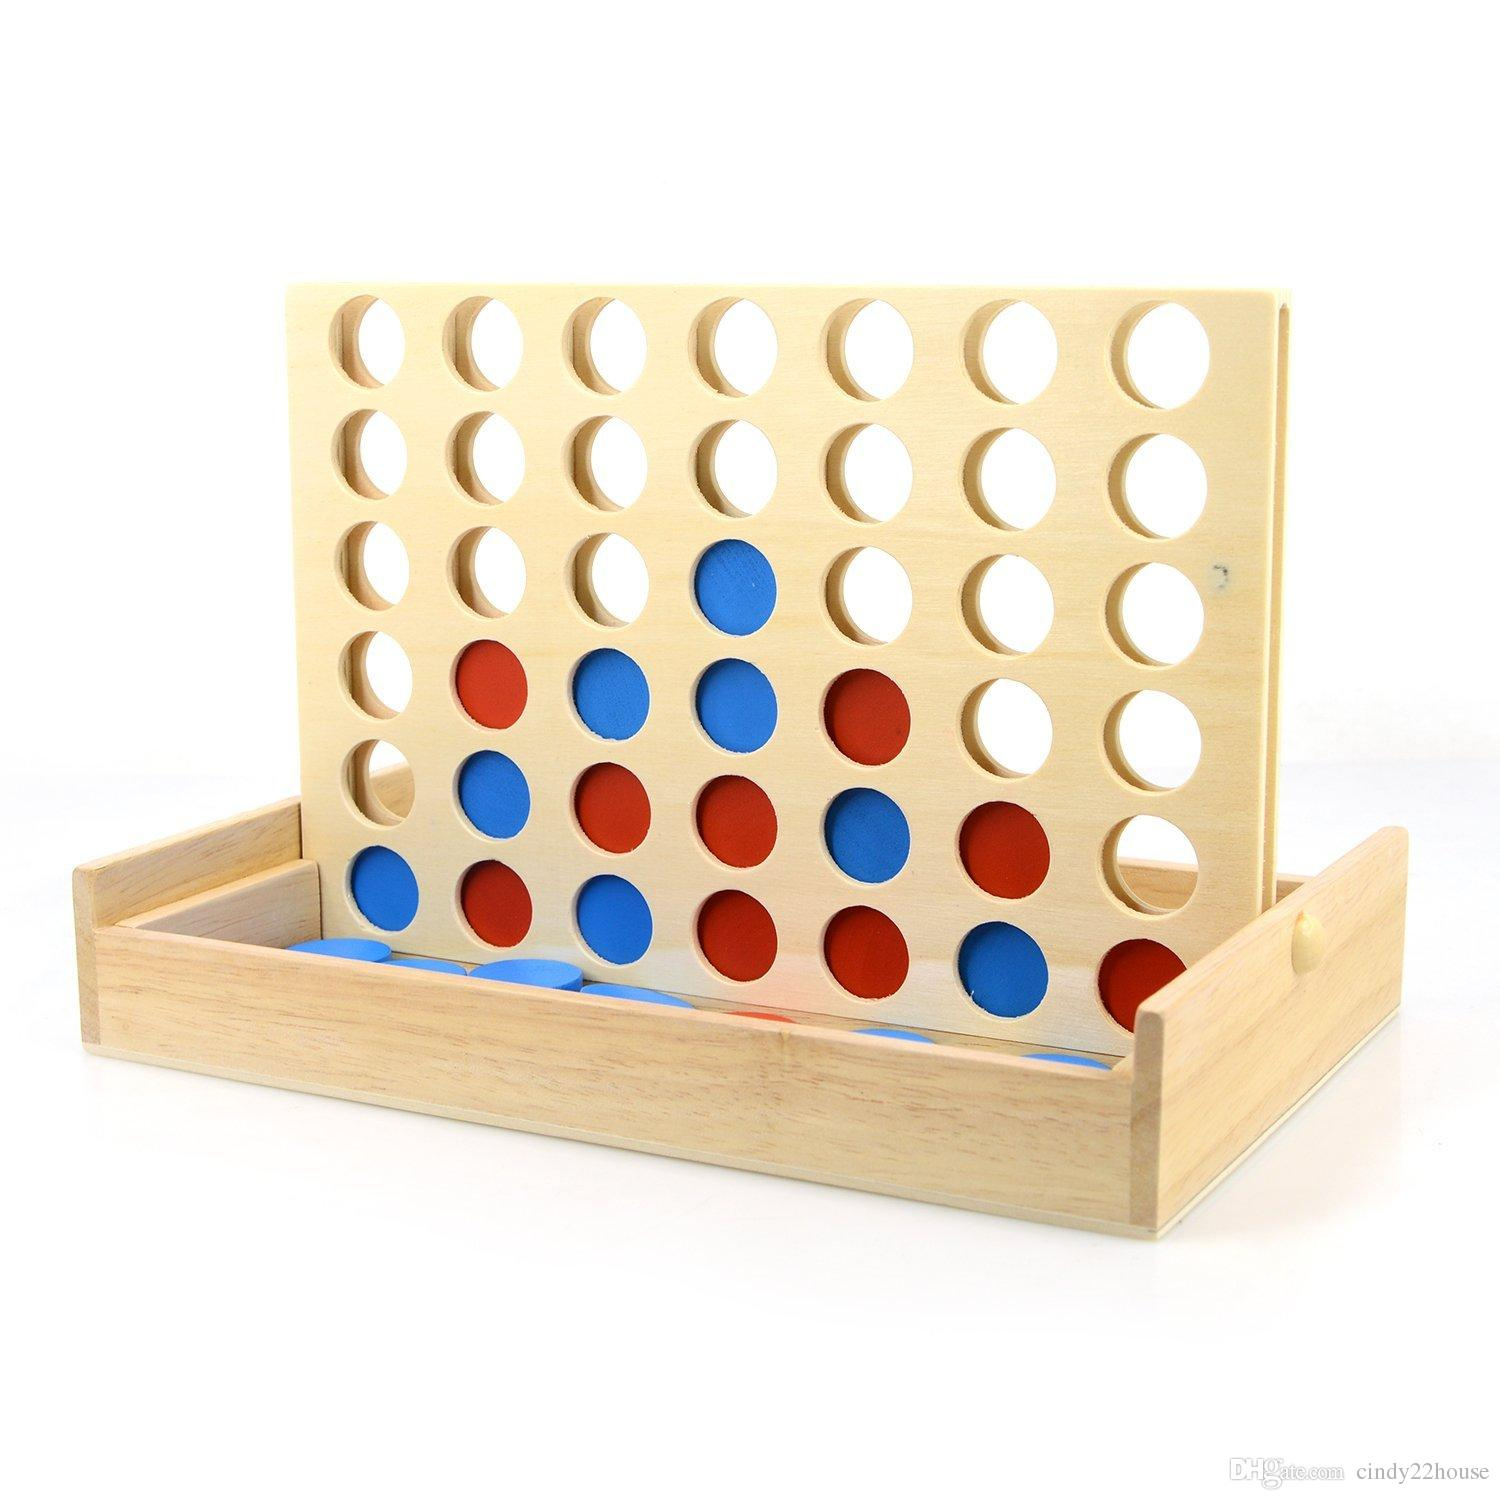 connect 4 wooden games